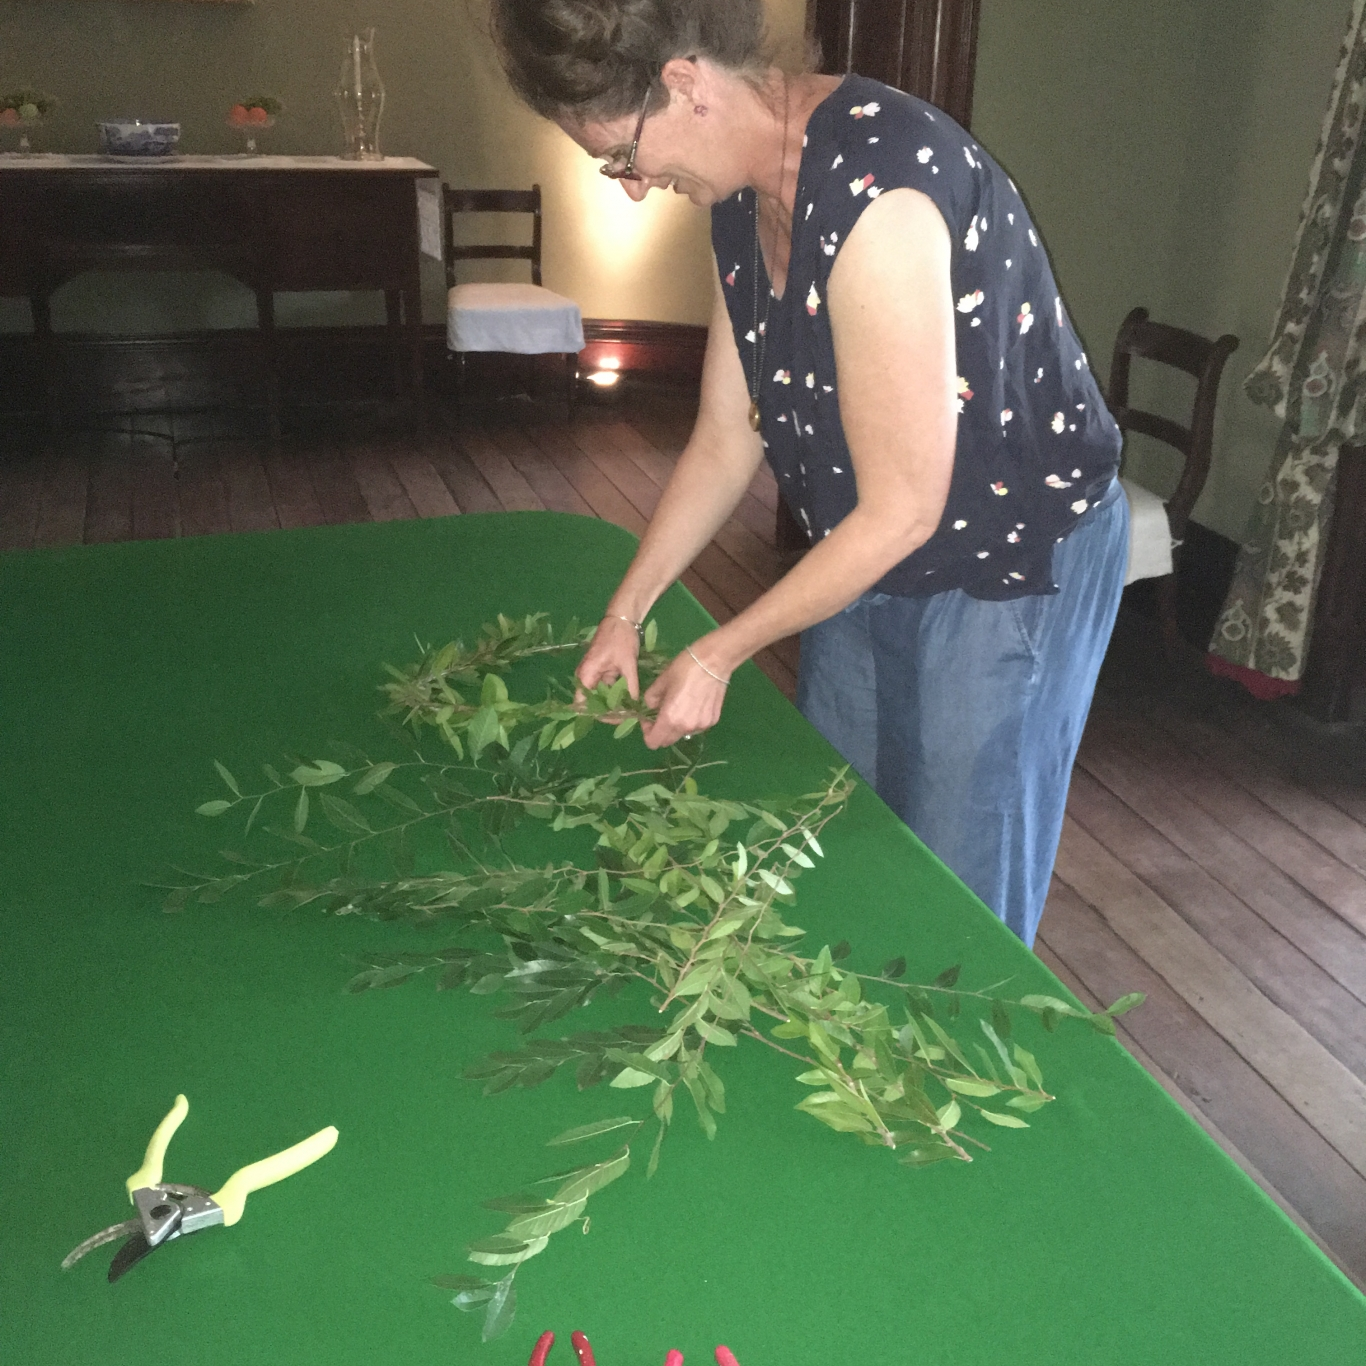 Woman preparing foliage on green topped table.